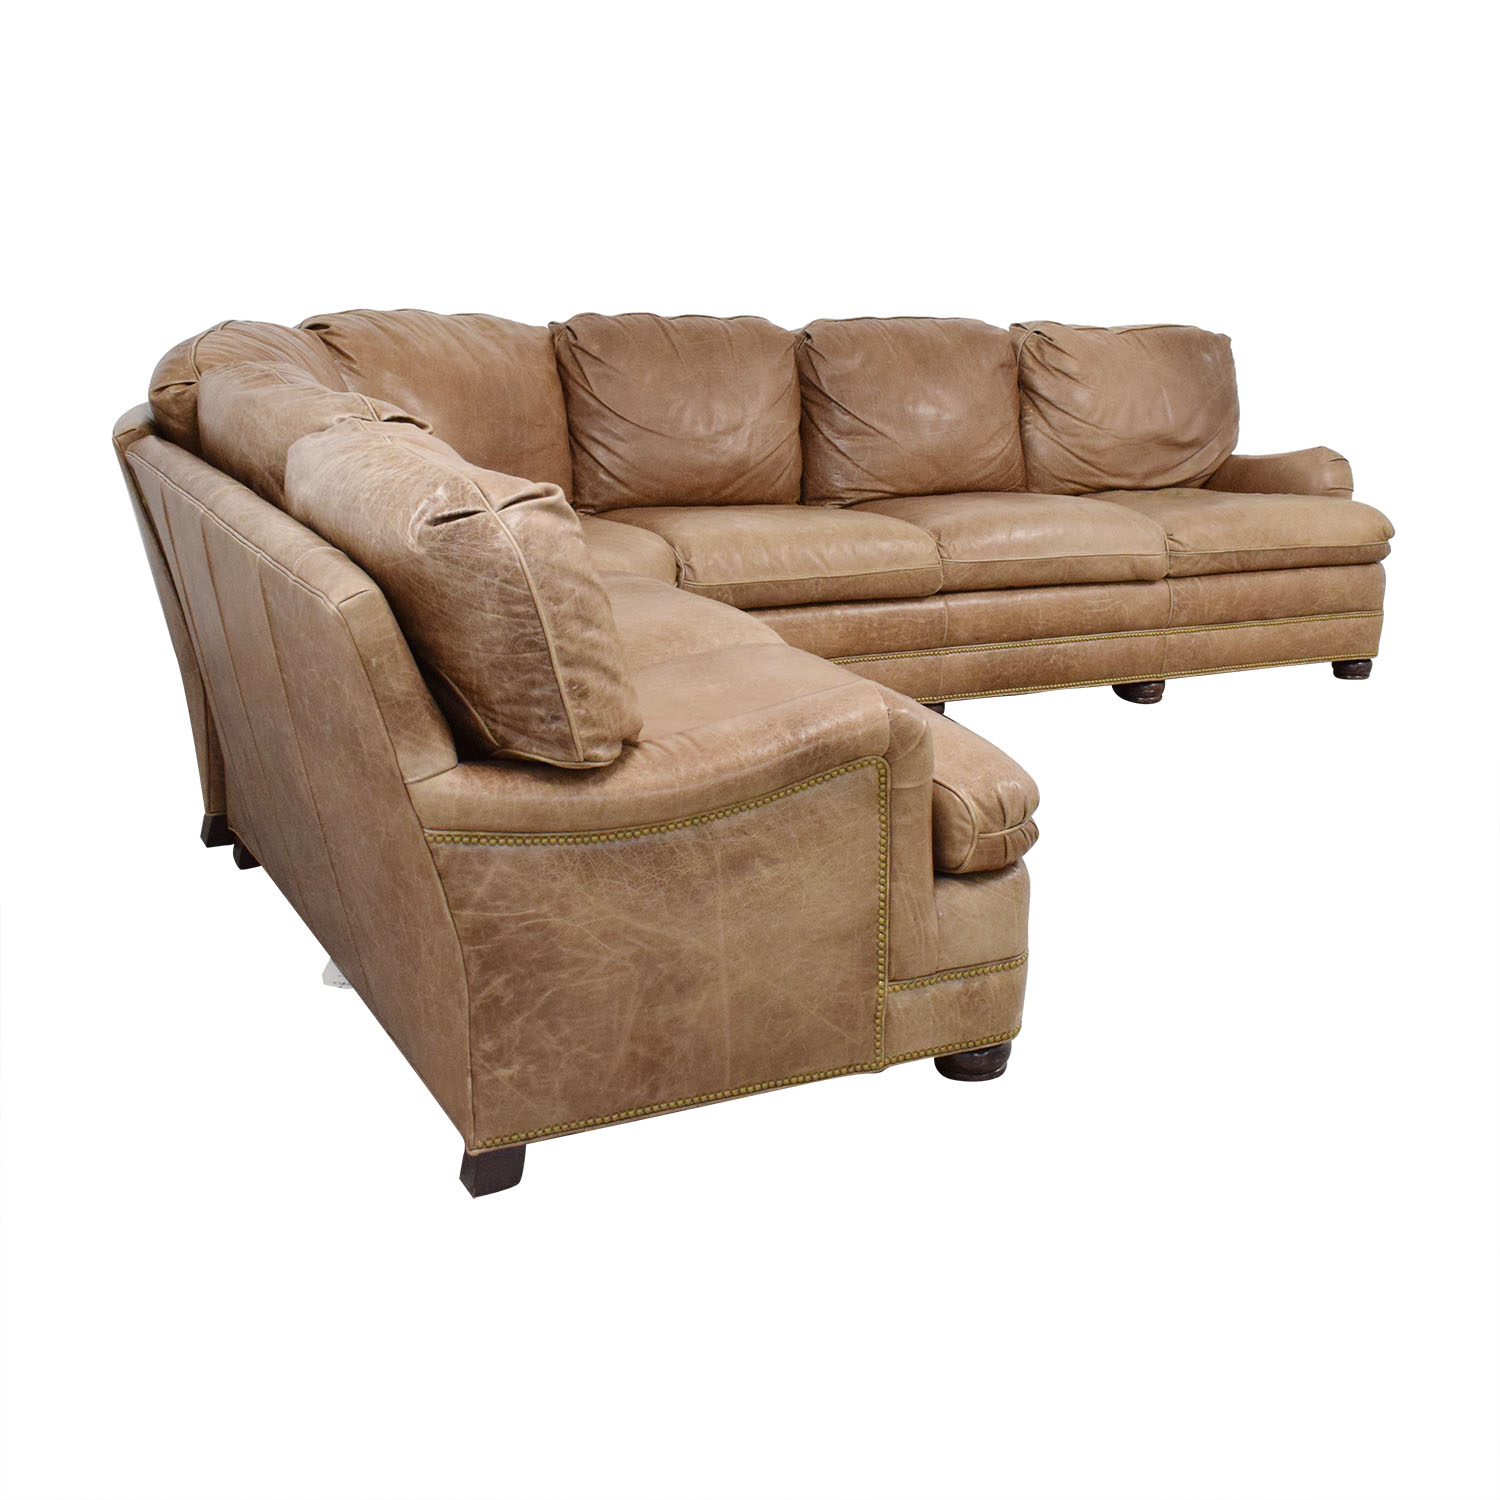 Hancock and Moore Hancock & Moore Leather Sectional Sofa dimensions